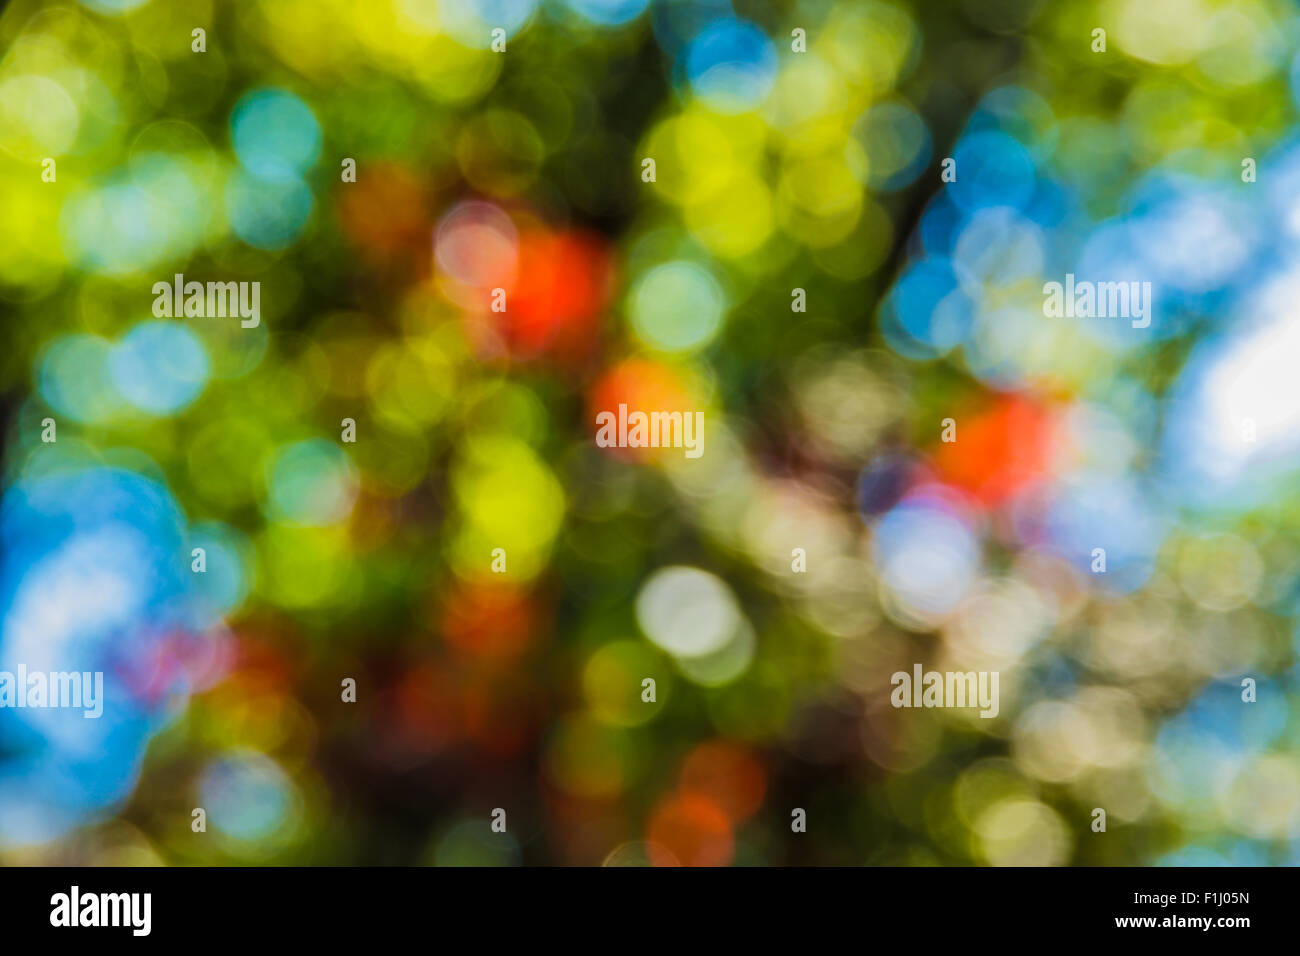 Soft focus photo of bright forest with sunlight, abstract natural background, blurred grunge image, Stock Photo